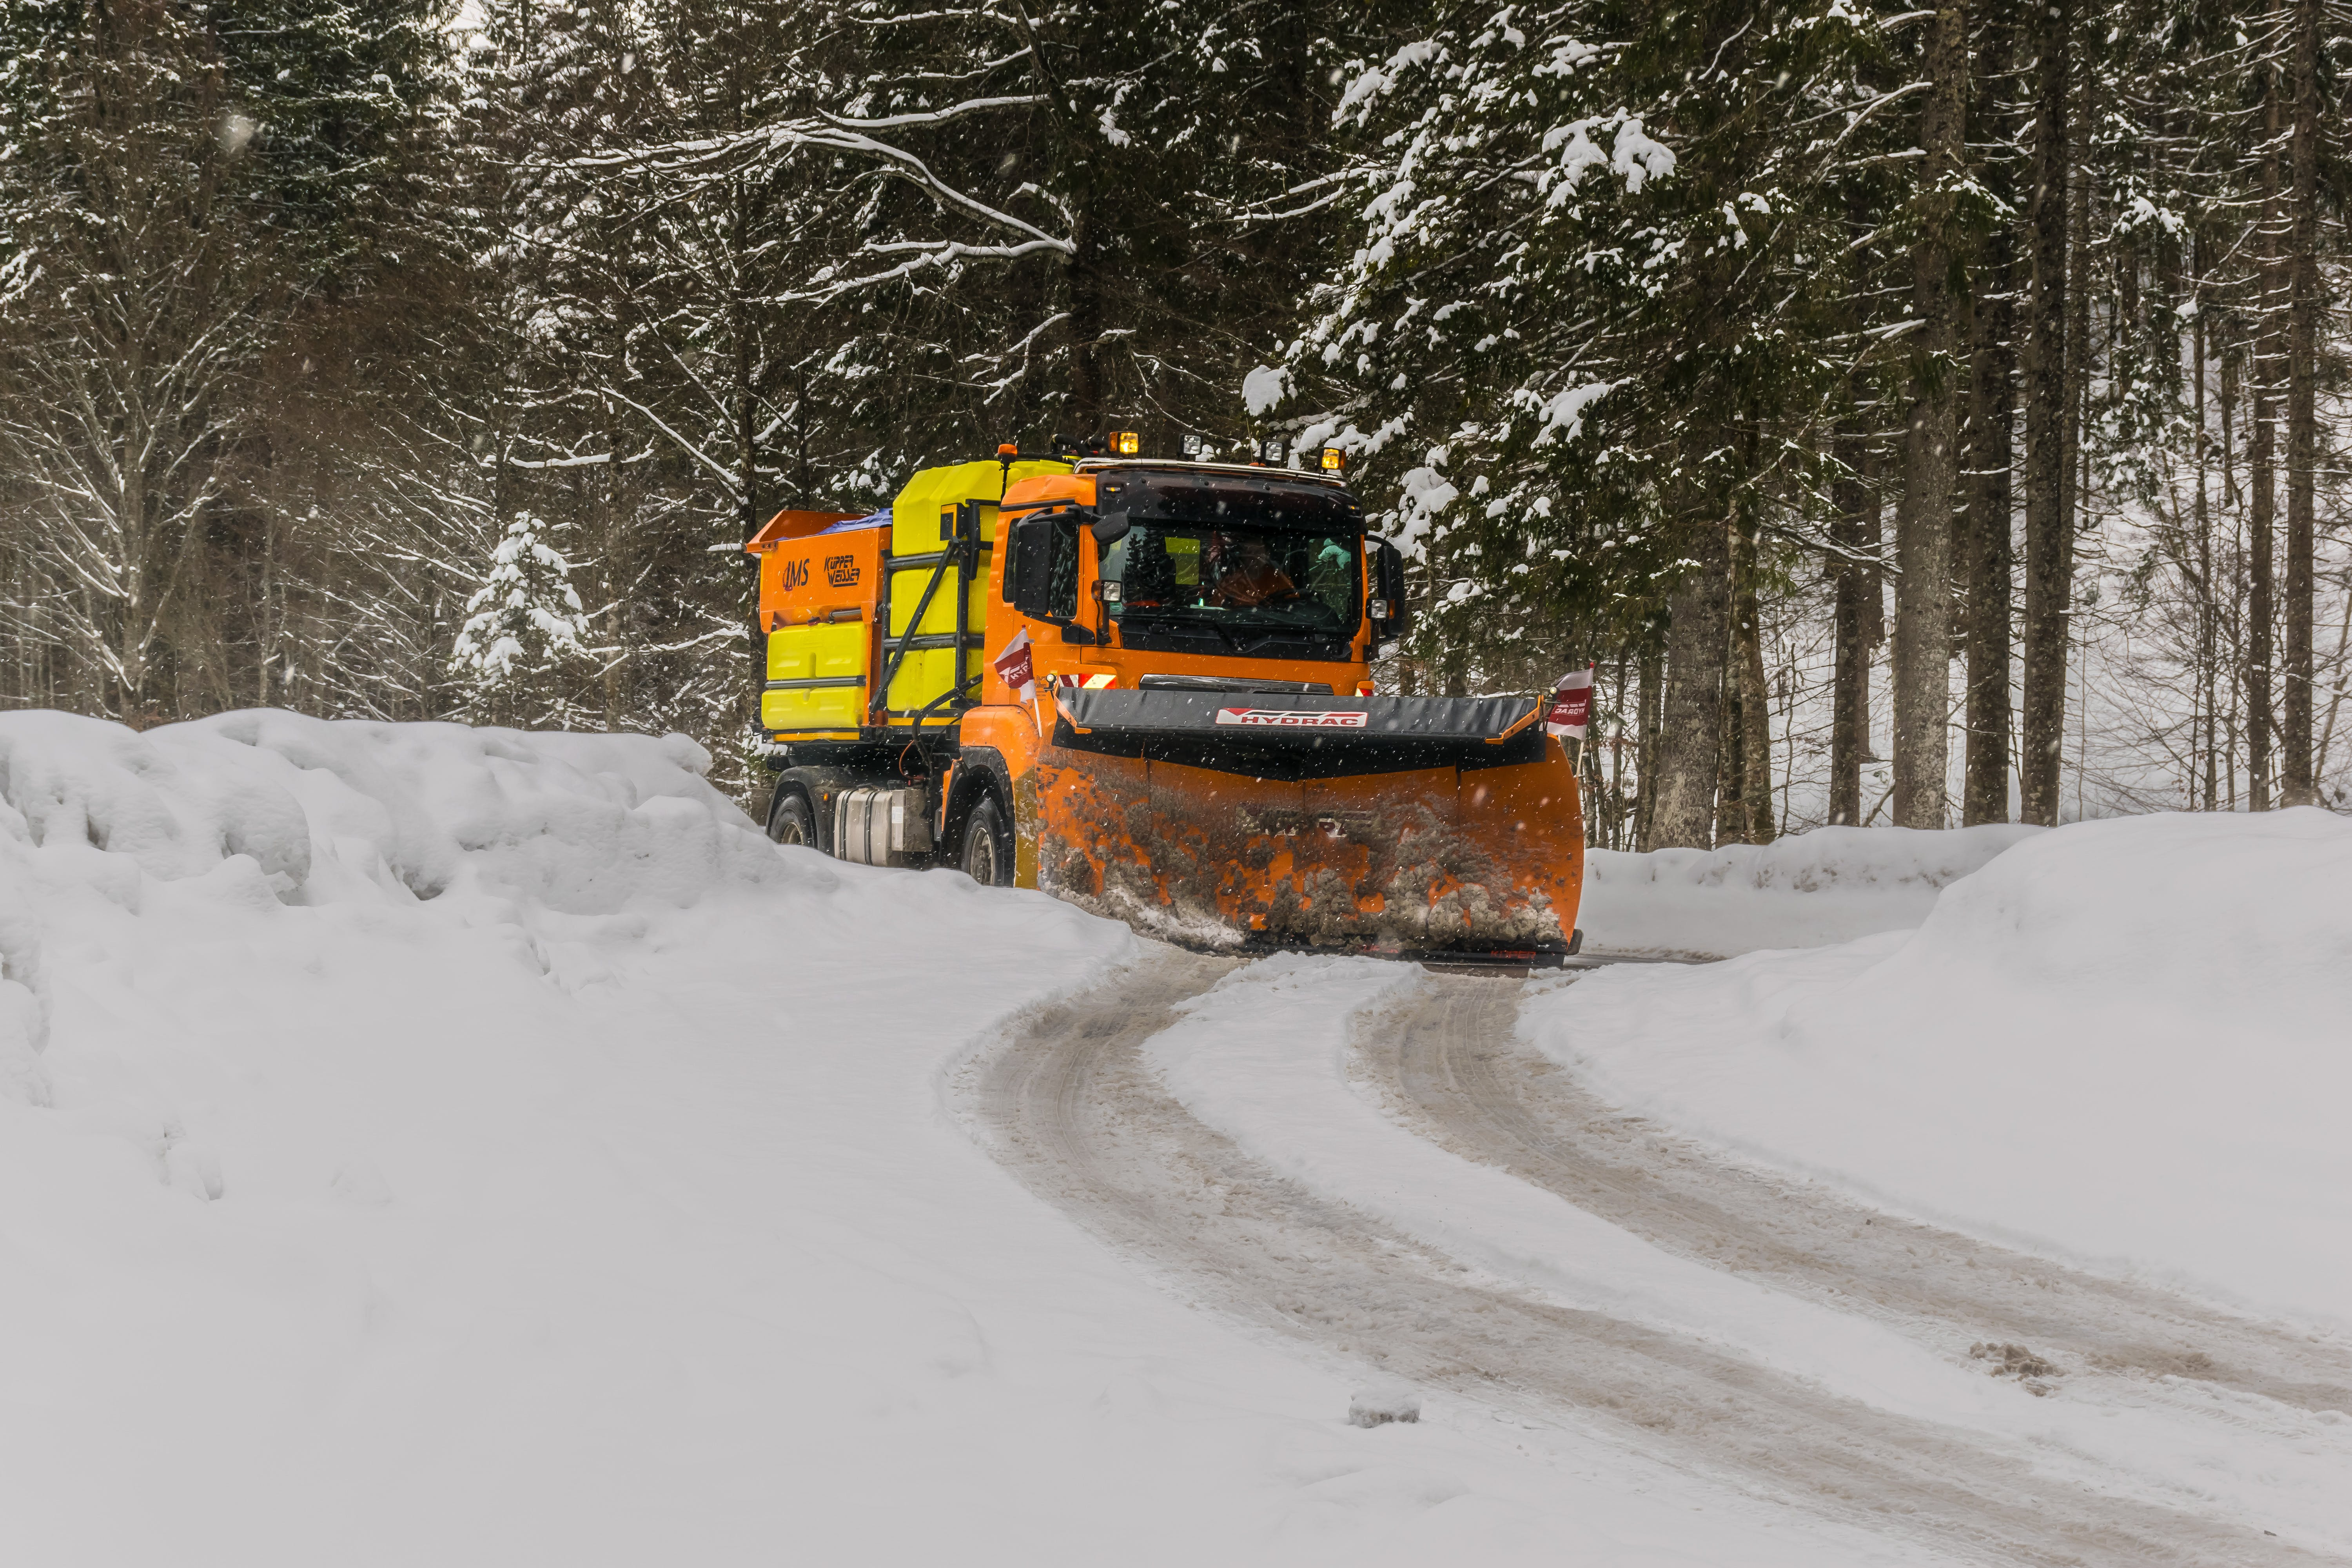 Yellow, Orange, and Black Truck Plowing Snow